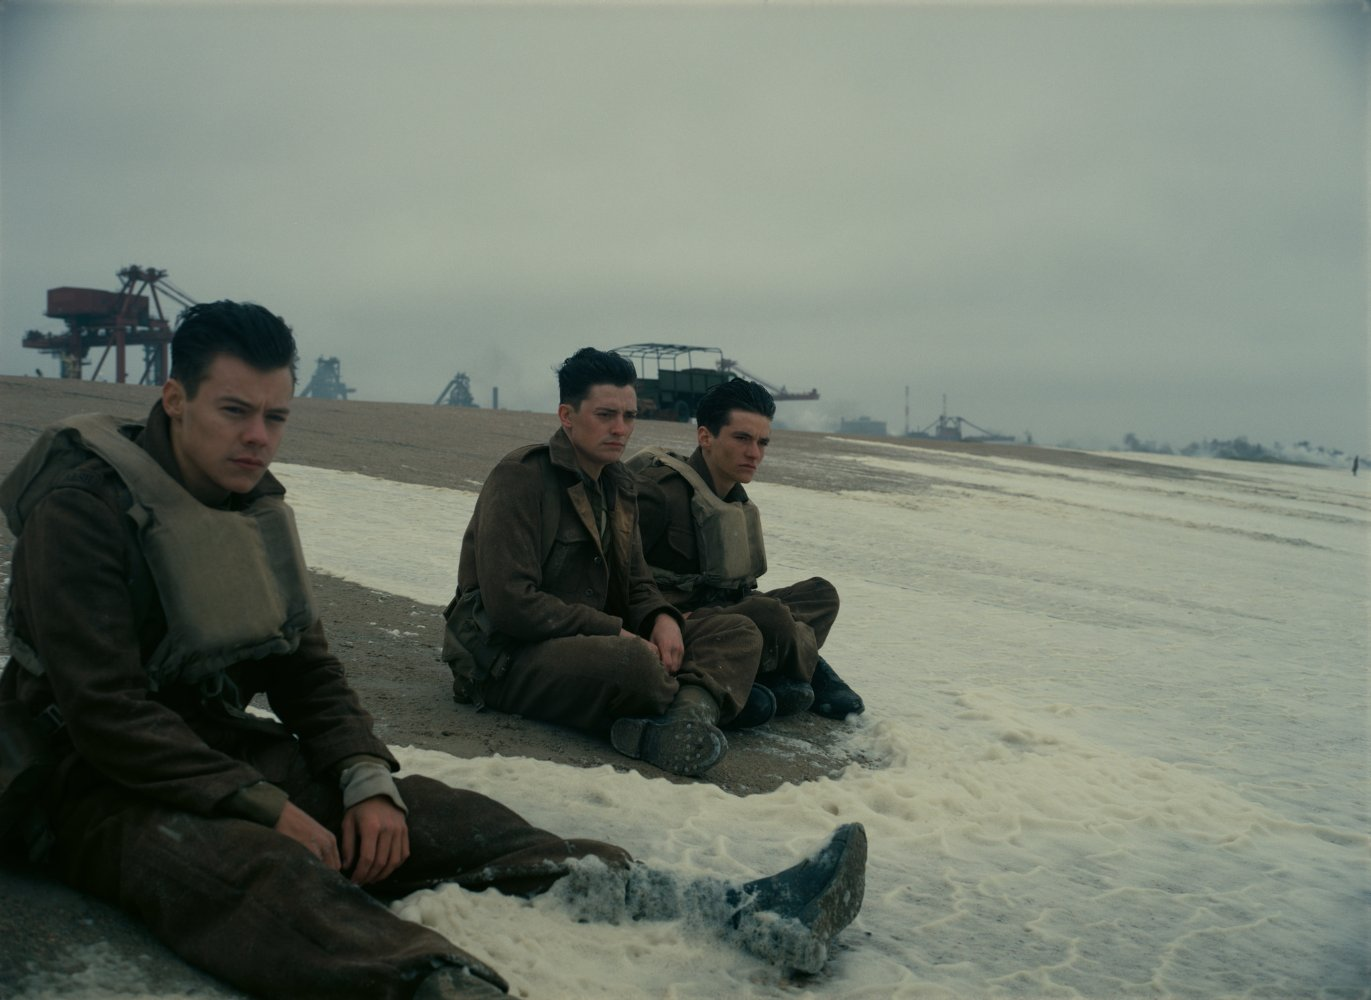 dunkirk pic 2